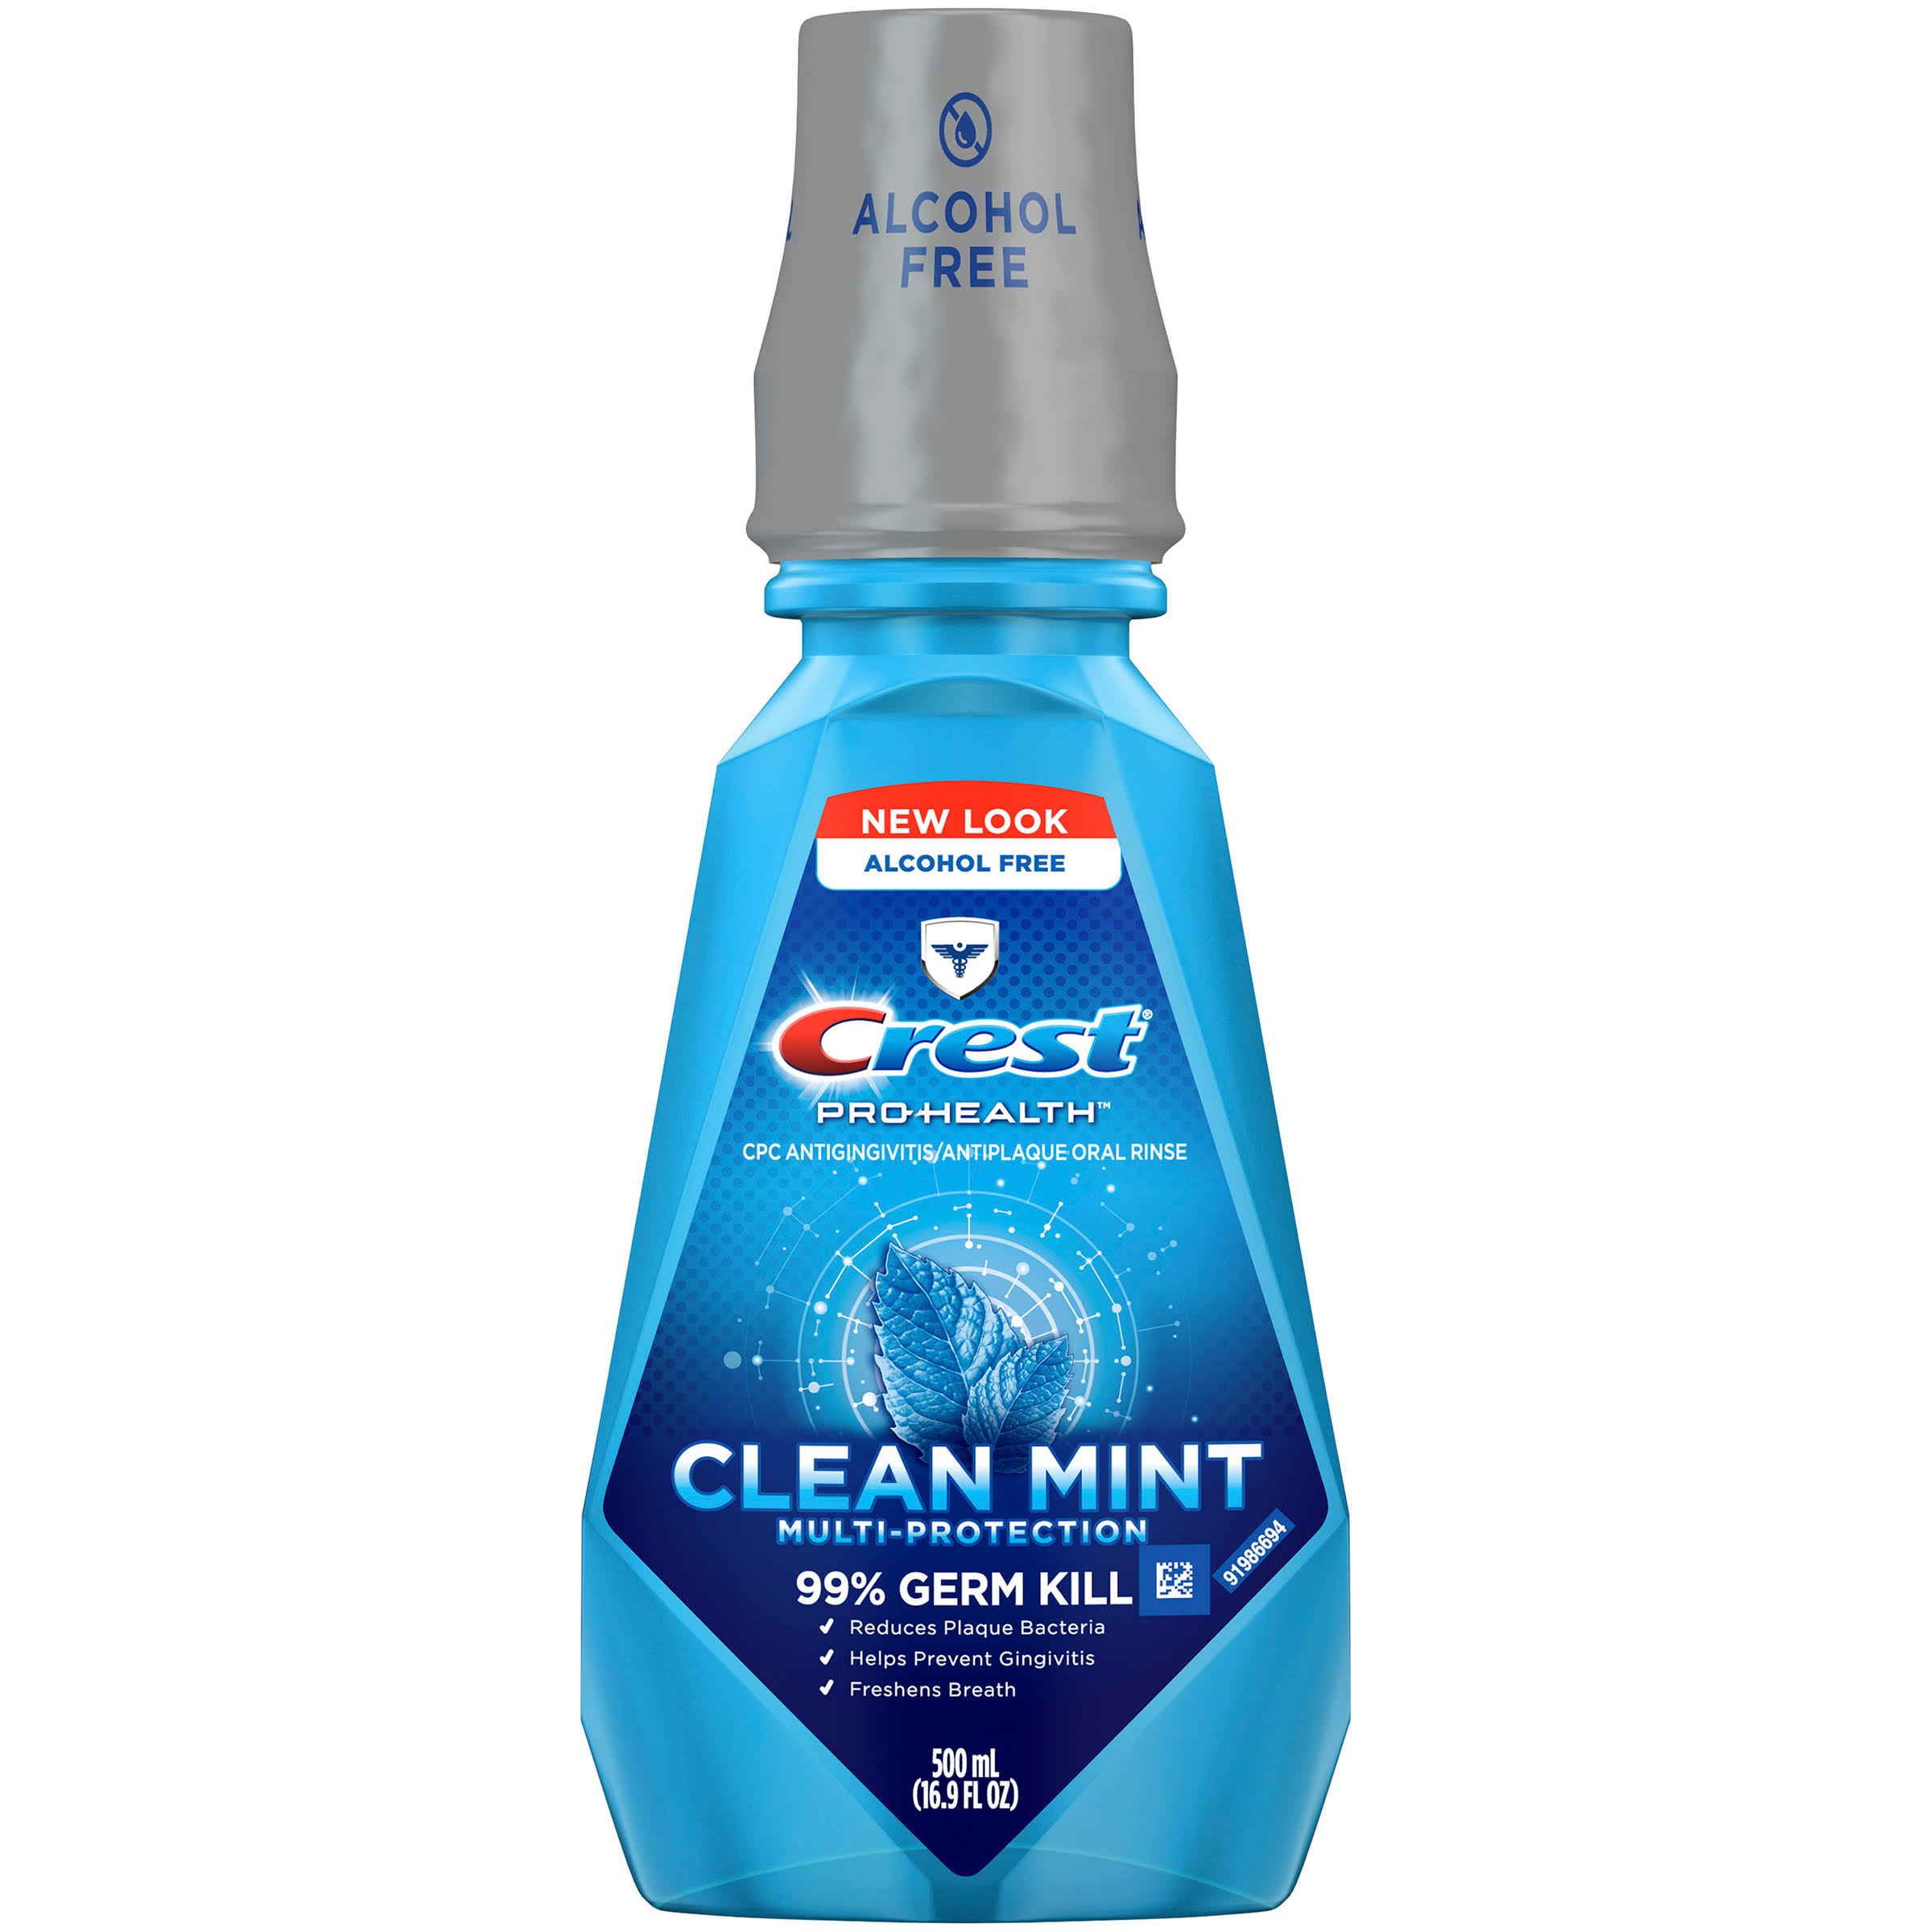 Crest Pro-Health Multi-Protection Clean Mint Antigingivitis/Antiplaque Oral Mouthwash - 16.9 fl oz